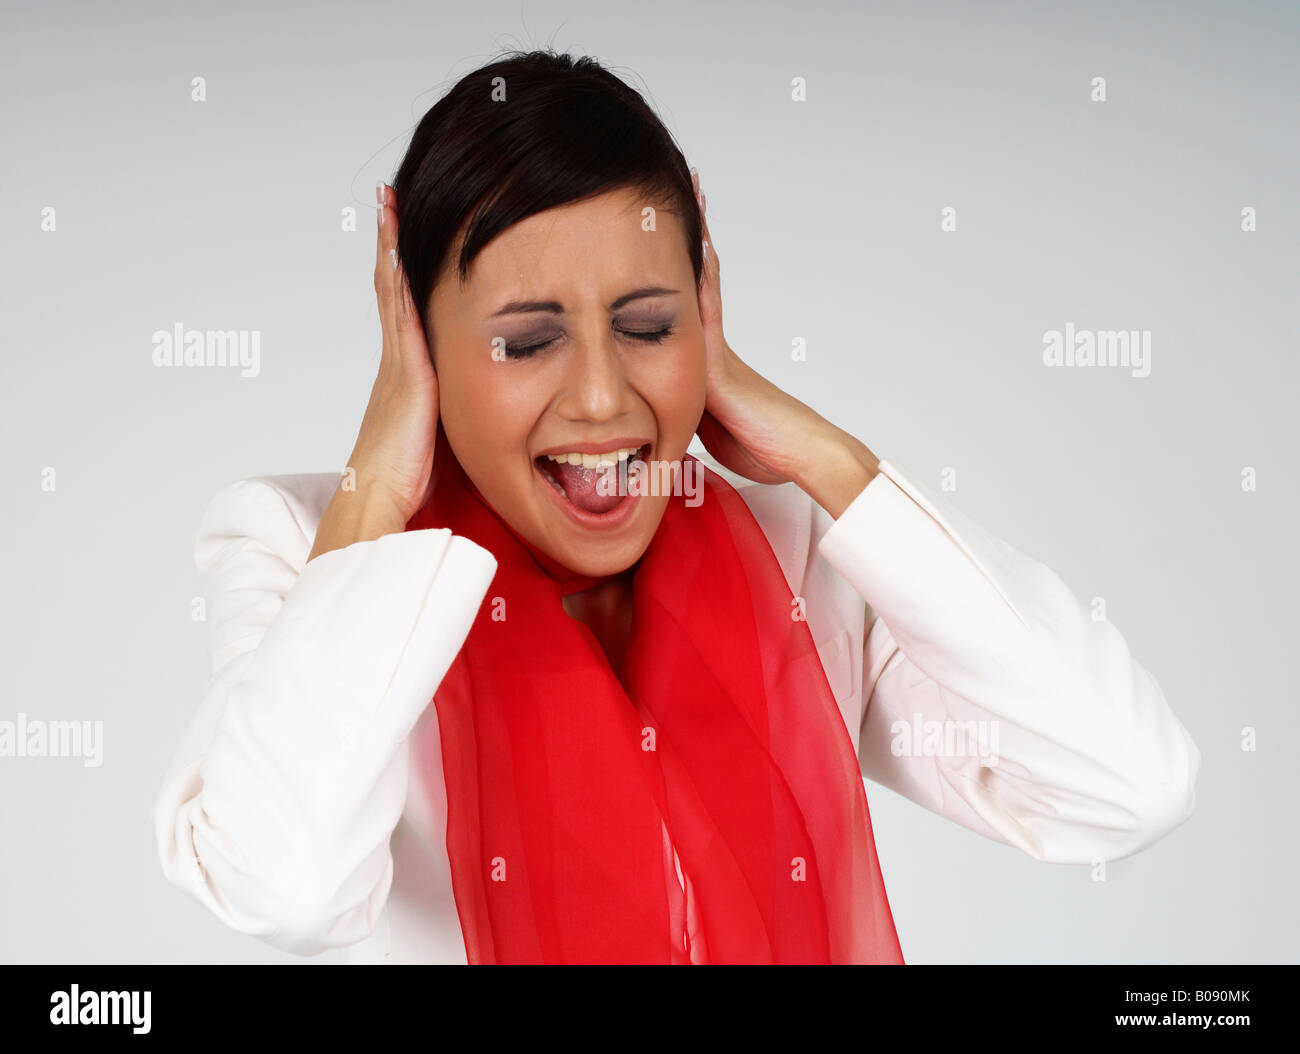 Young businesswoman shouting in desperation, frustrated - Stock Image